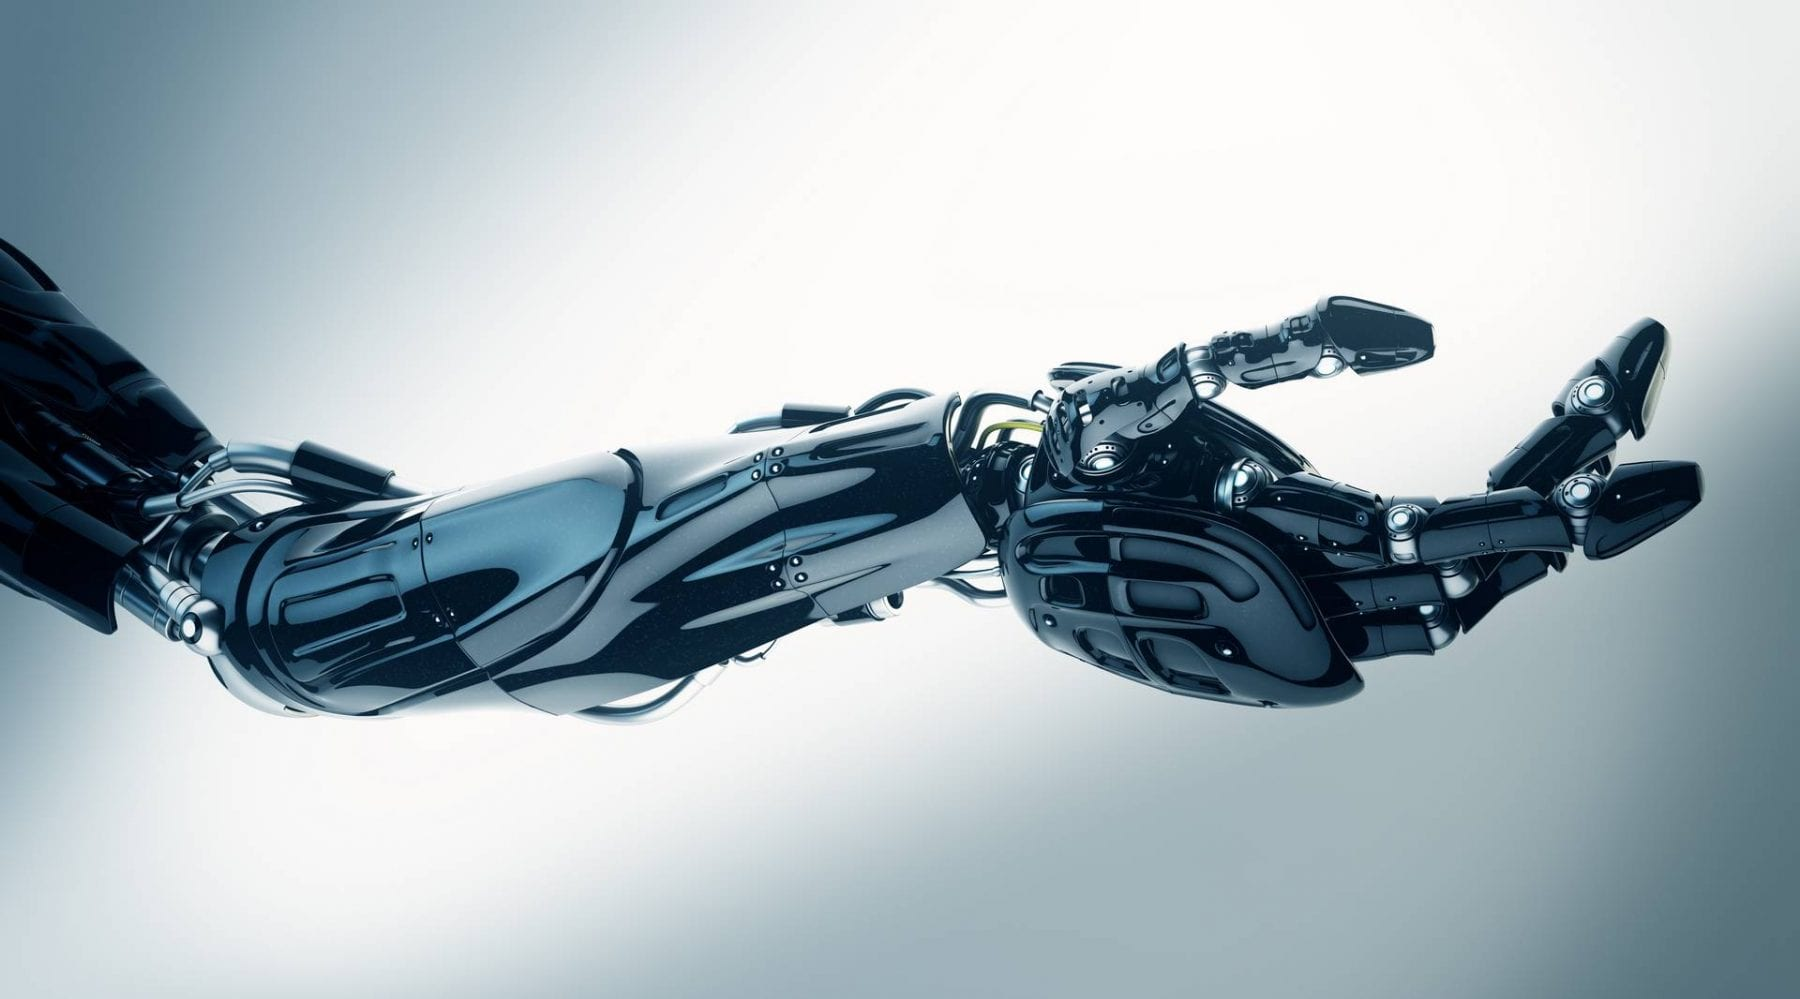 Should we worry about artificial intelligence and advanced robots? Credit: Shutterstock